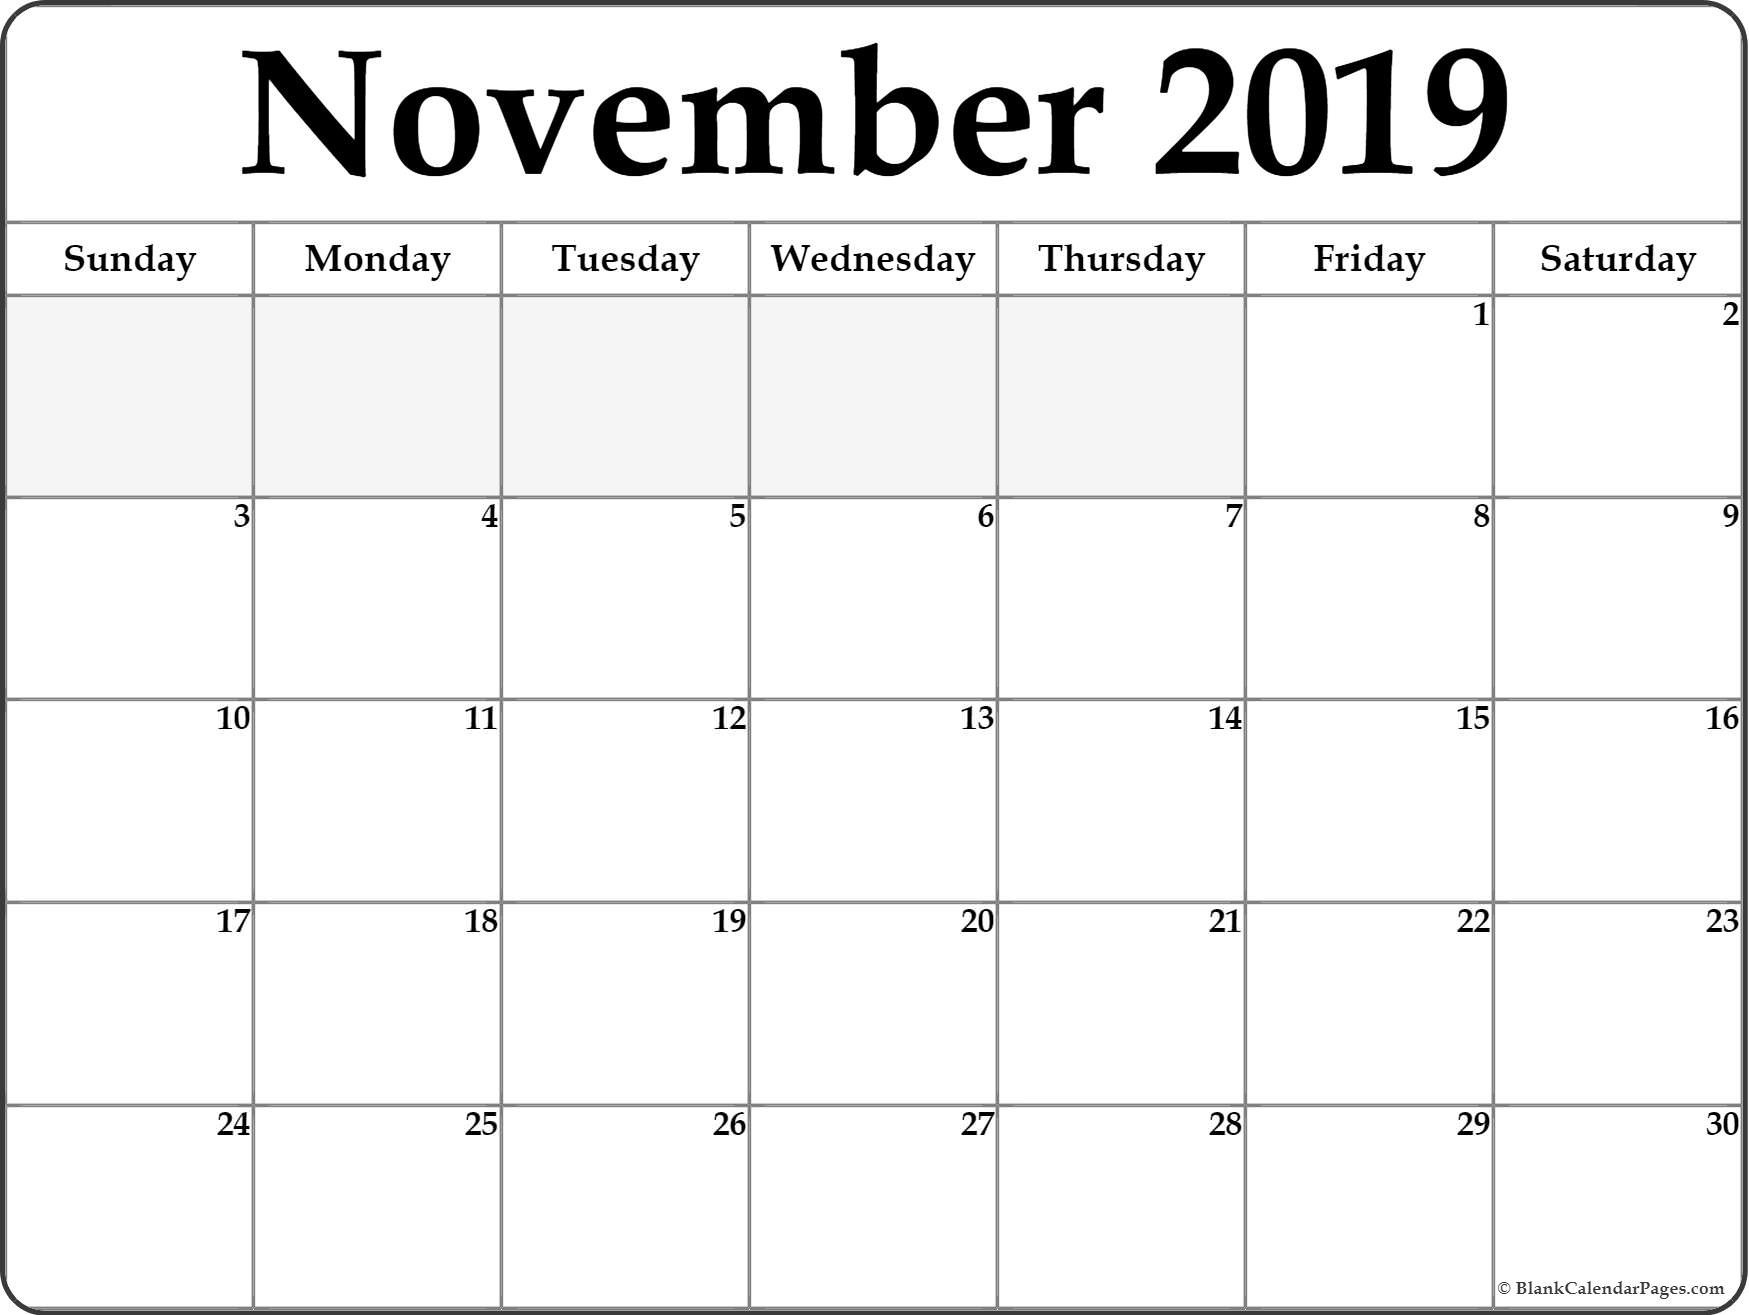 November 2019 Calendar Of Events | Calendar Template